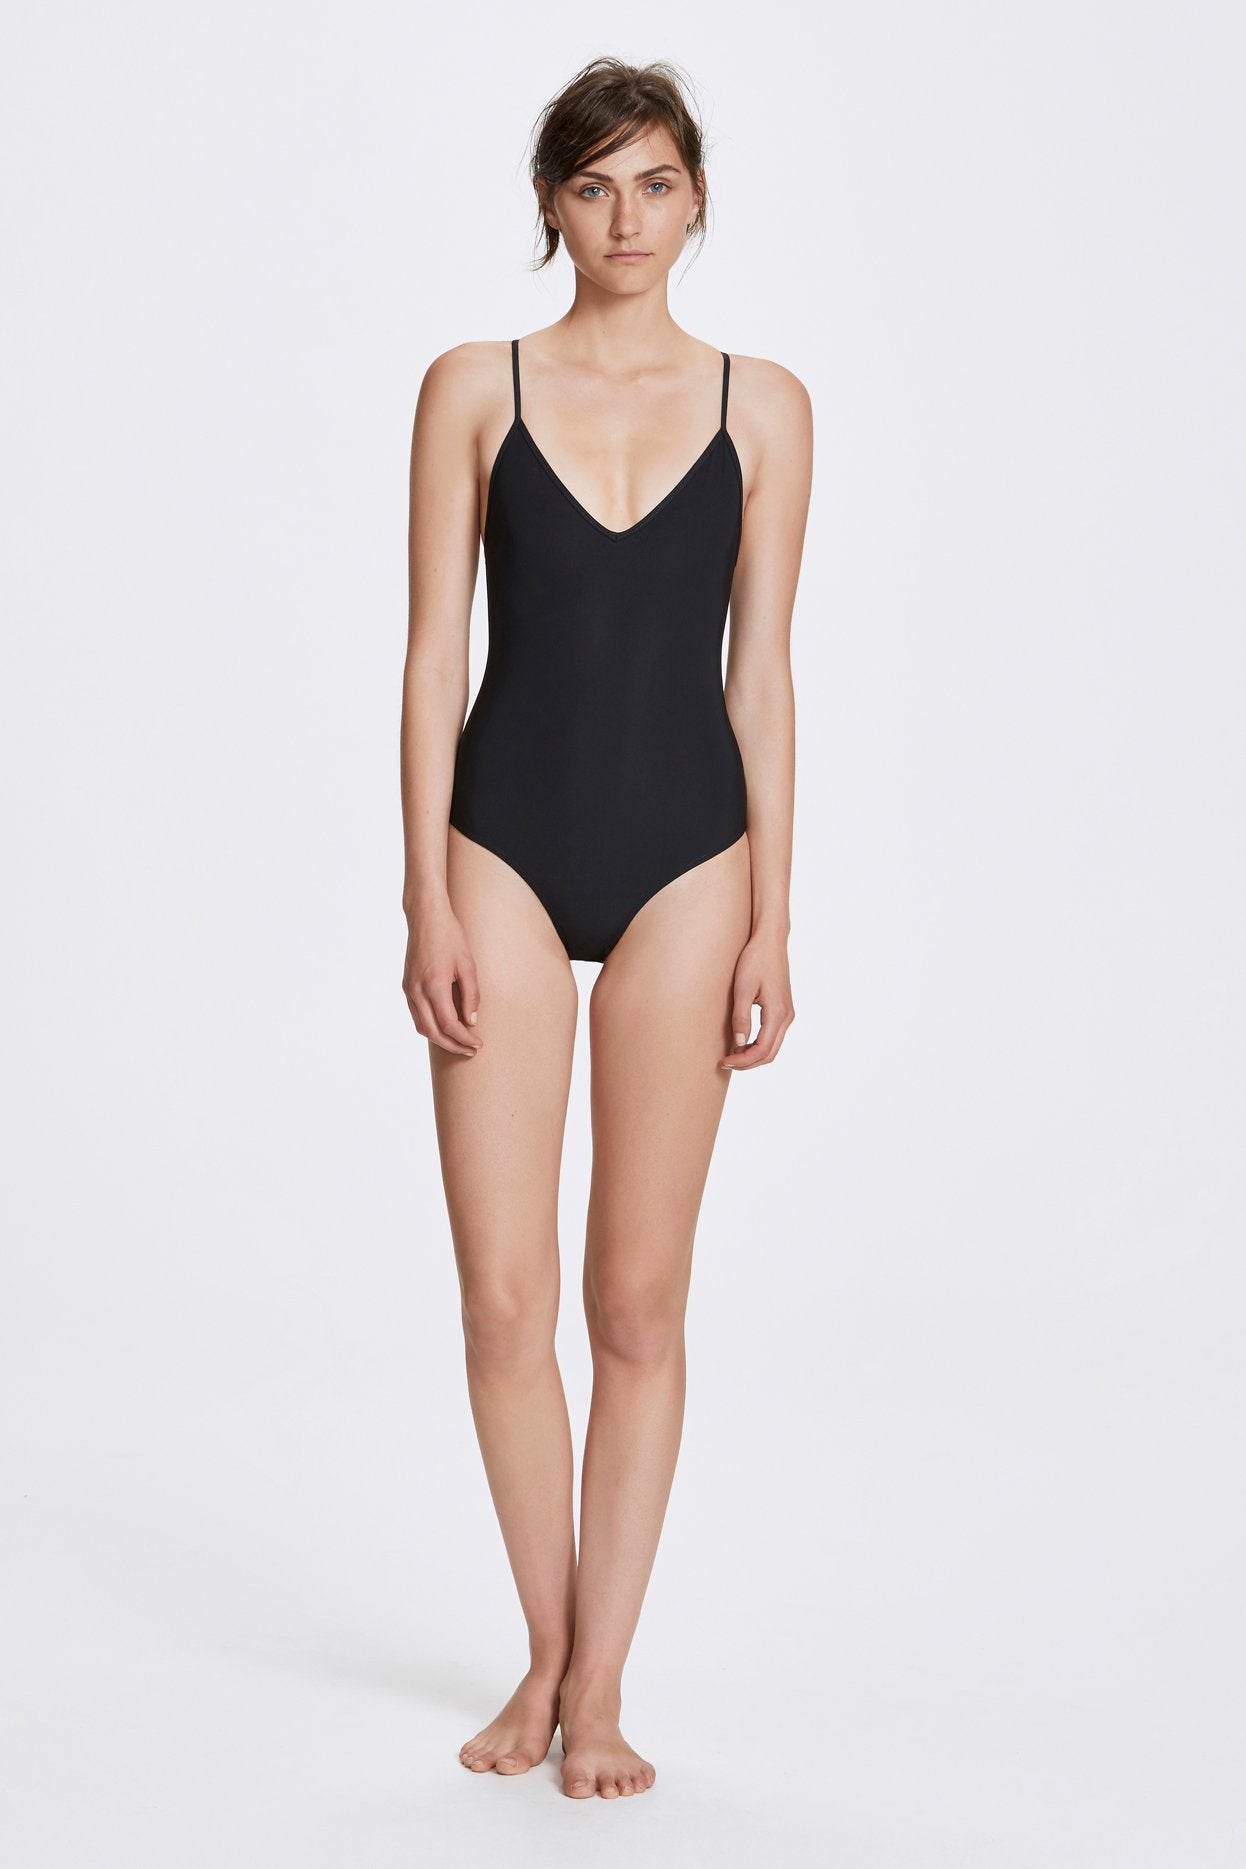 Her Line Dylan Swimwear One Piece Coal Black Front